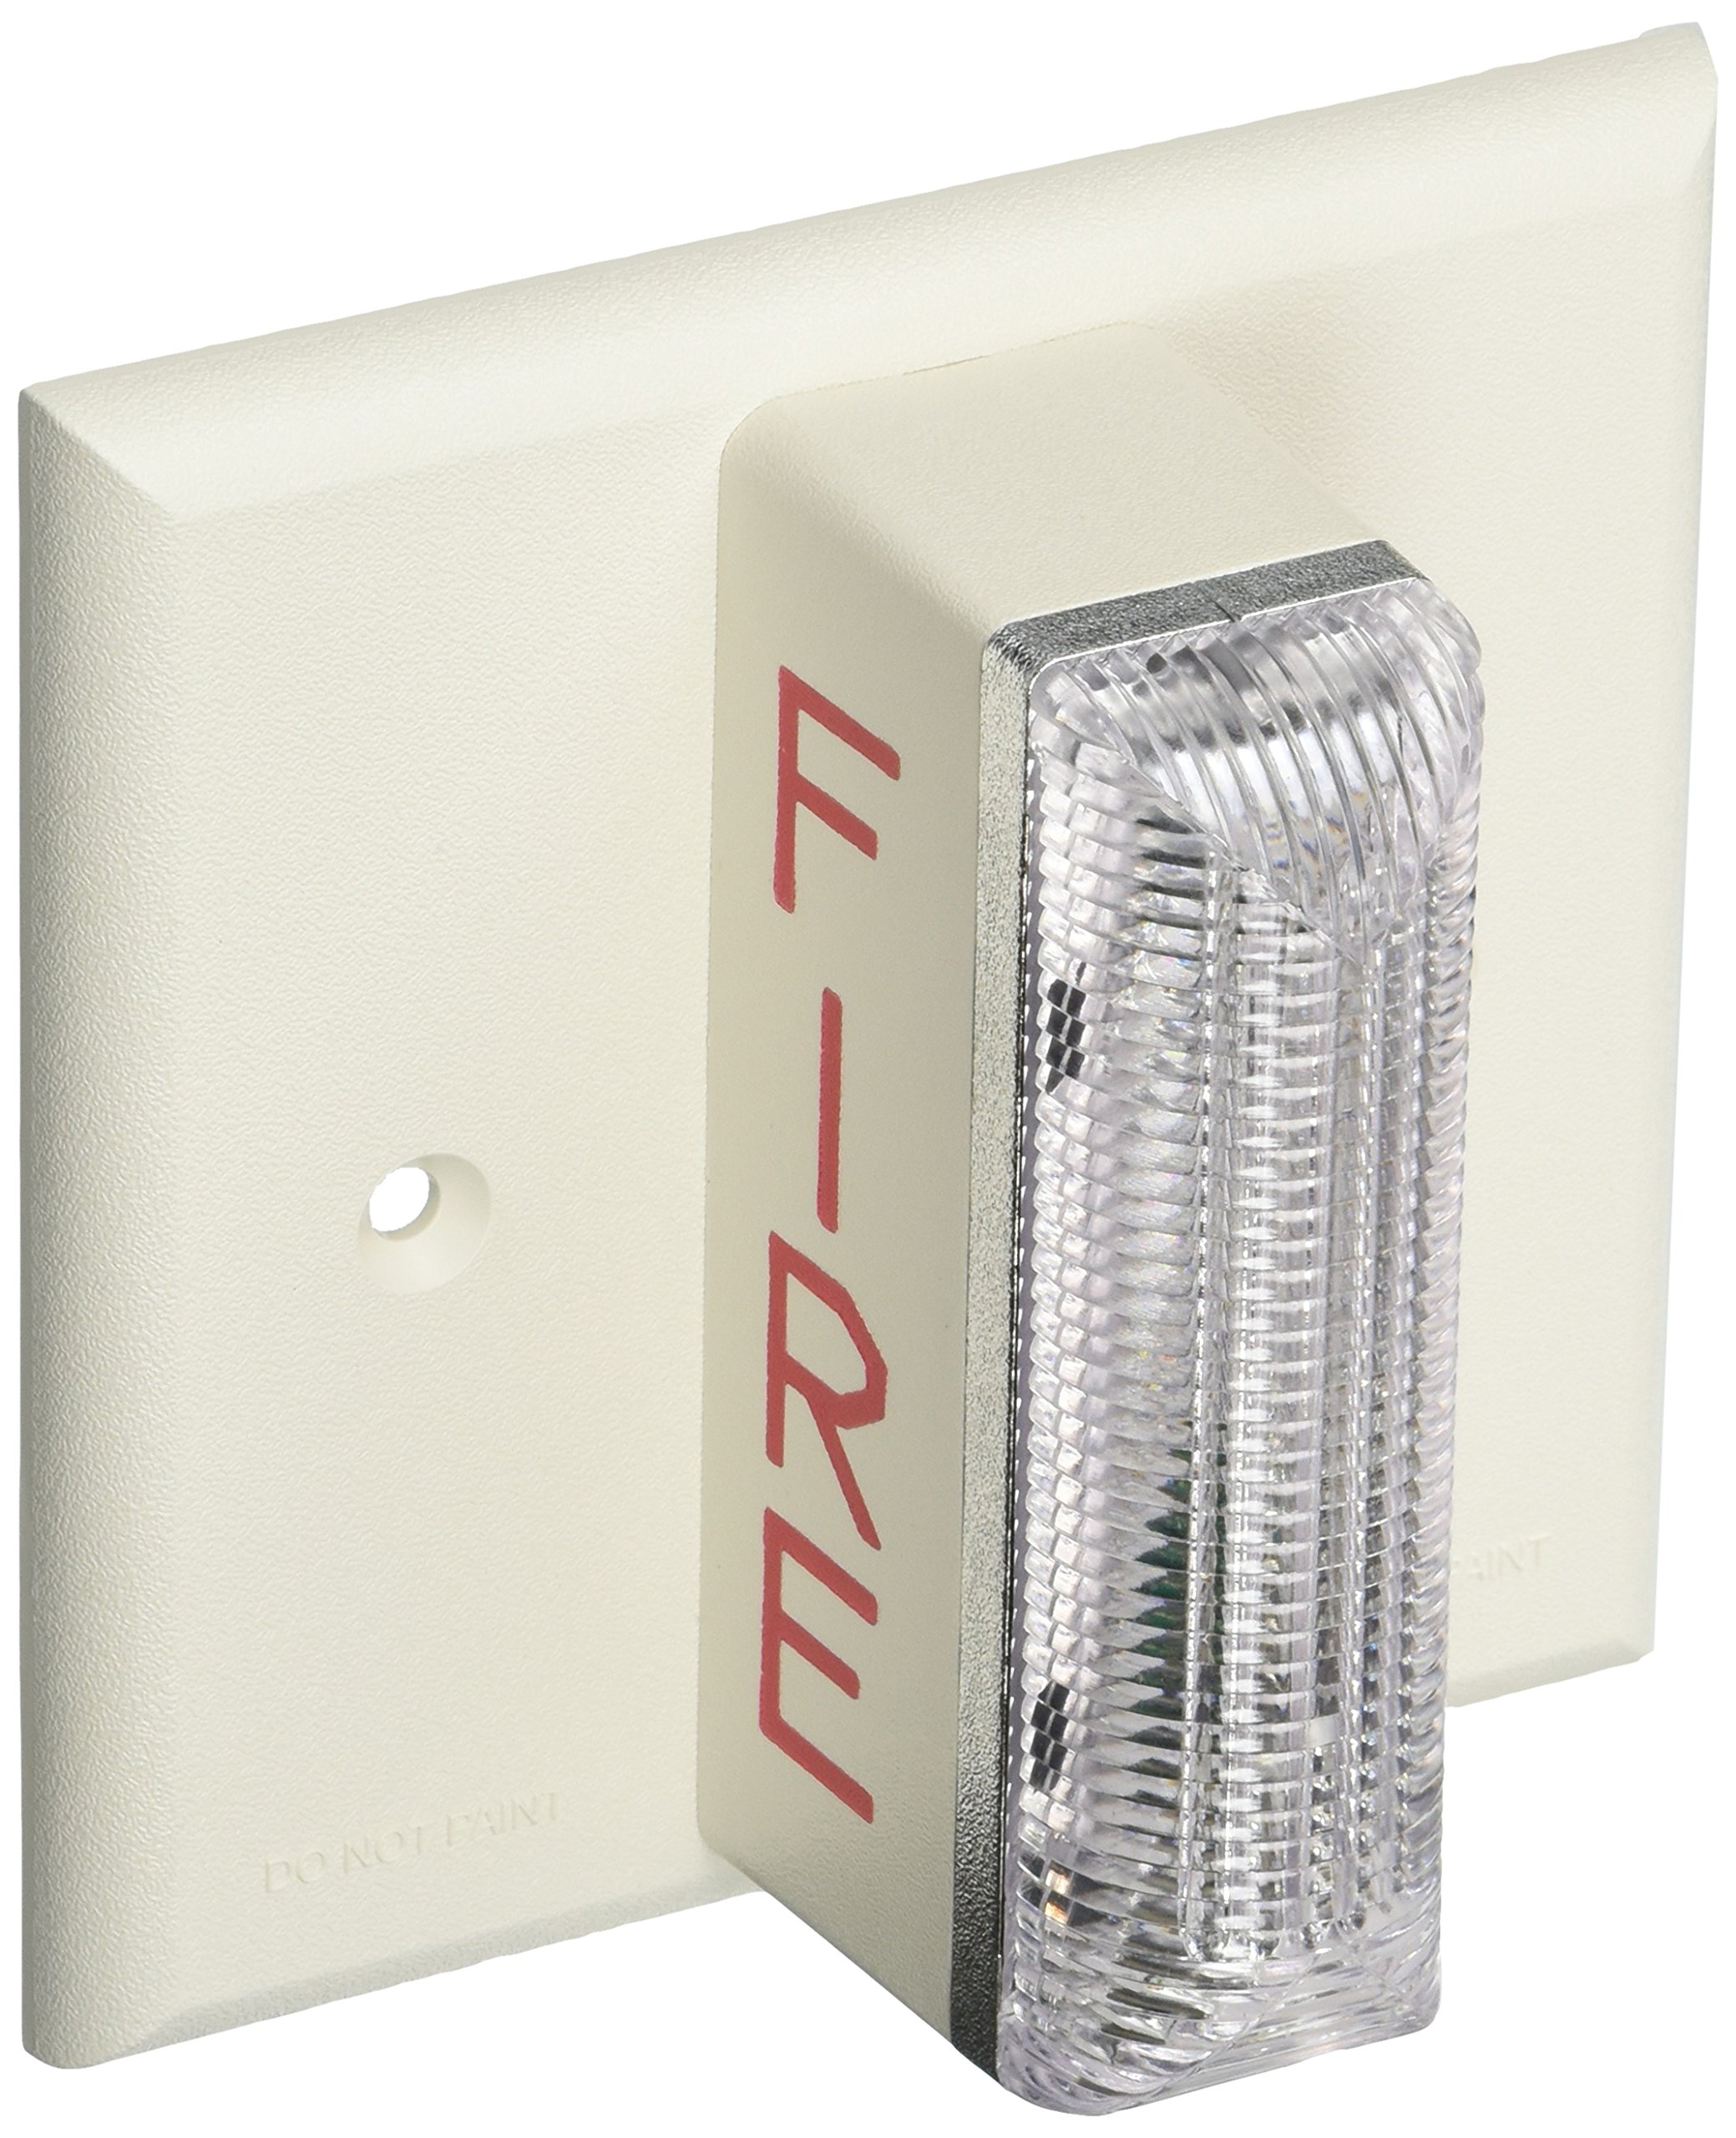 Gentex GXS-120177WW Fire Evacuation, 120VAC Remote Evacuation Strobe - Off-White Faceplate